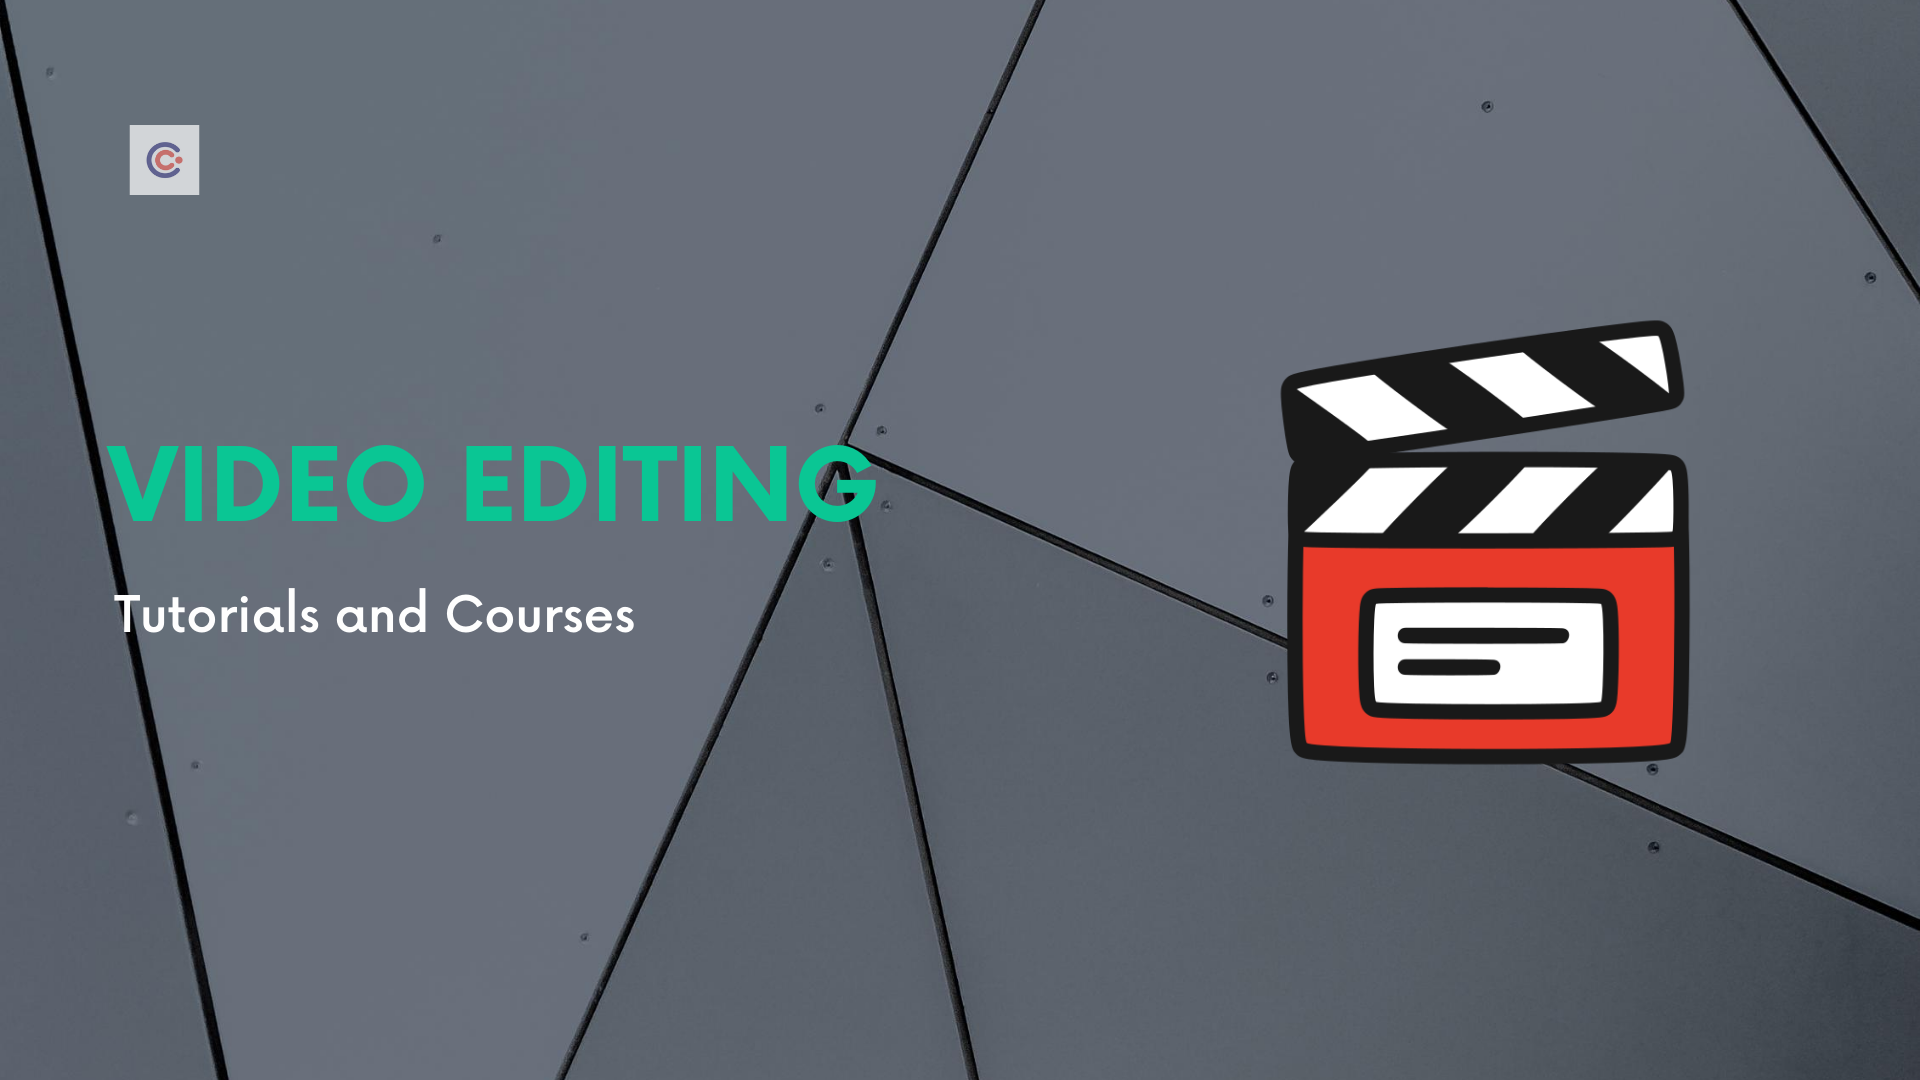 7 Best Video editing Courses and Classes - Learn Video editing Online